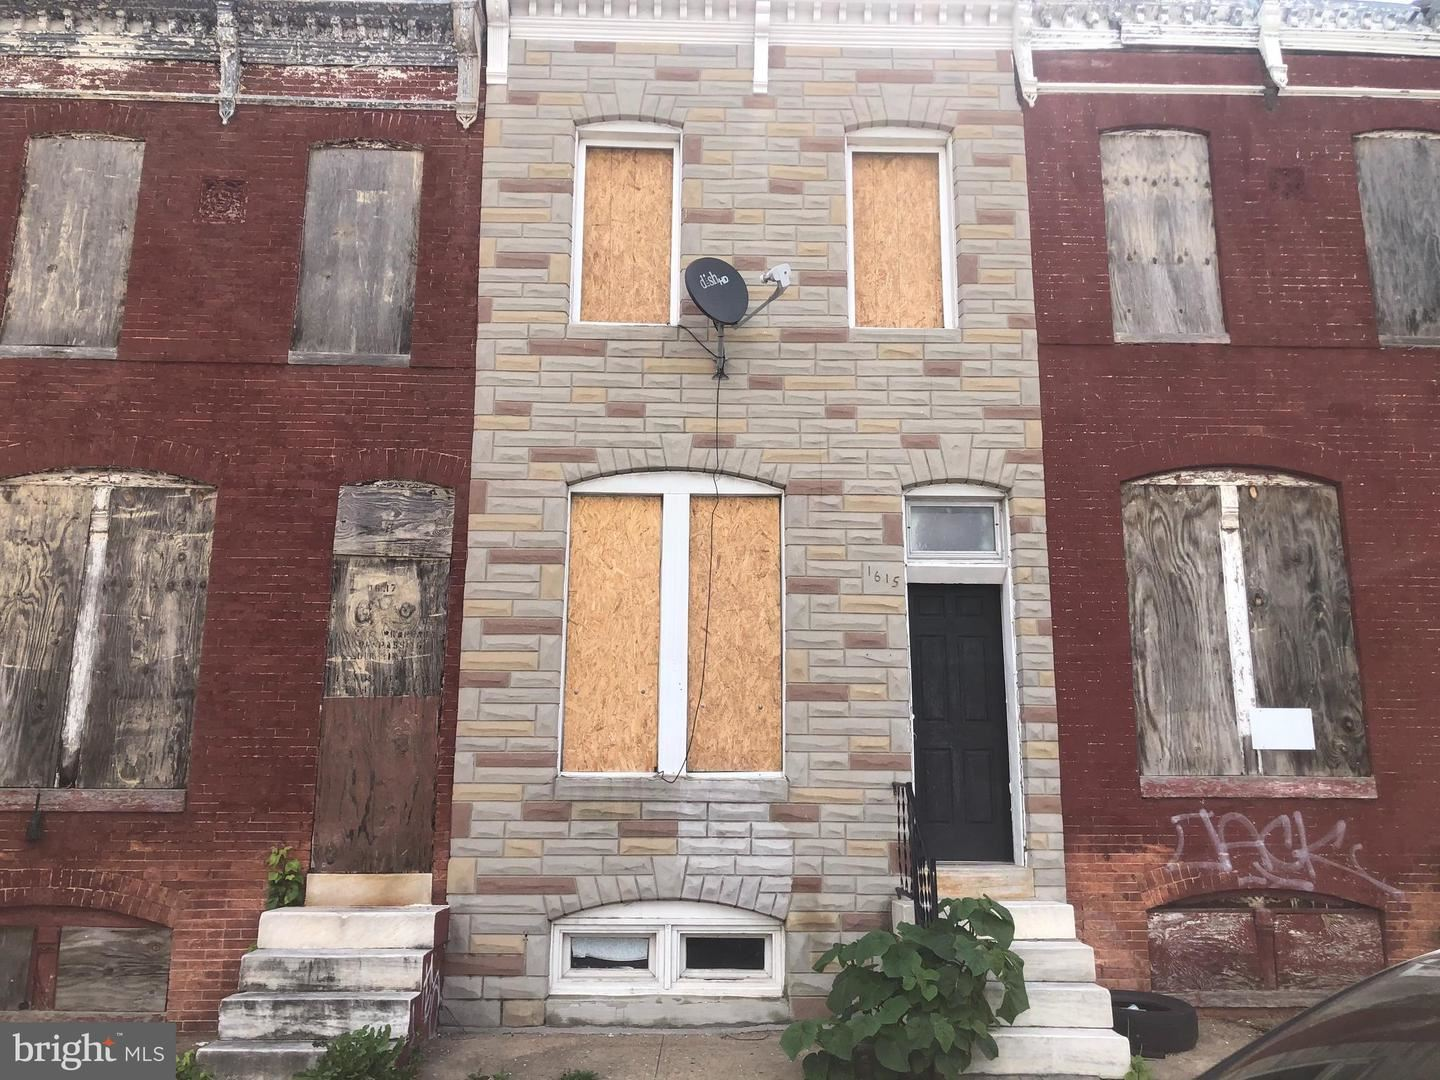 1615 N PATTERSON PARK AVE, Baltimore, MD 21213 - MLS#: MDBA548400